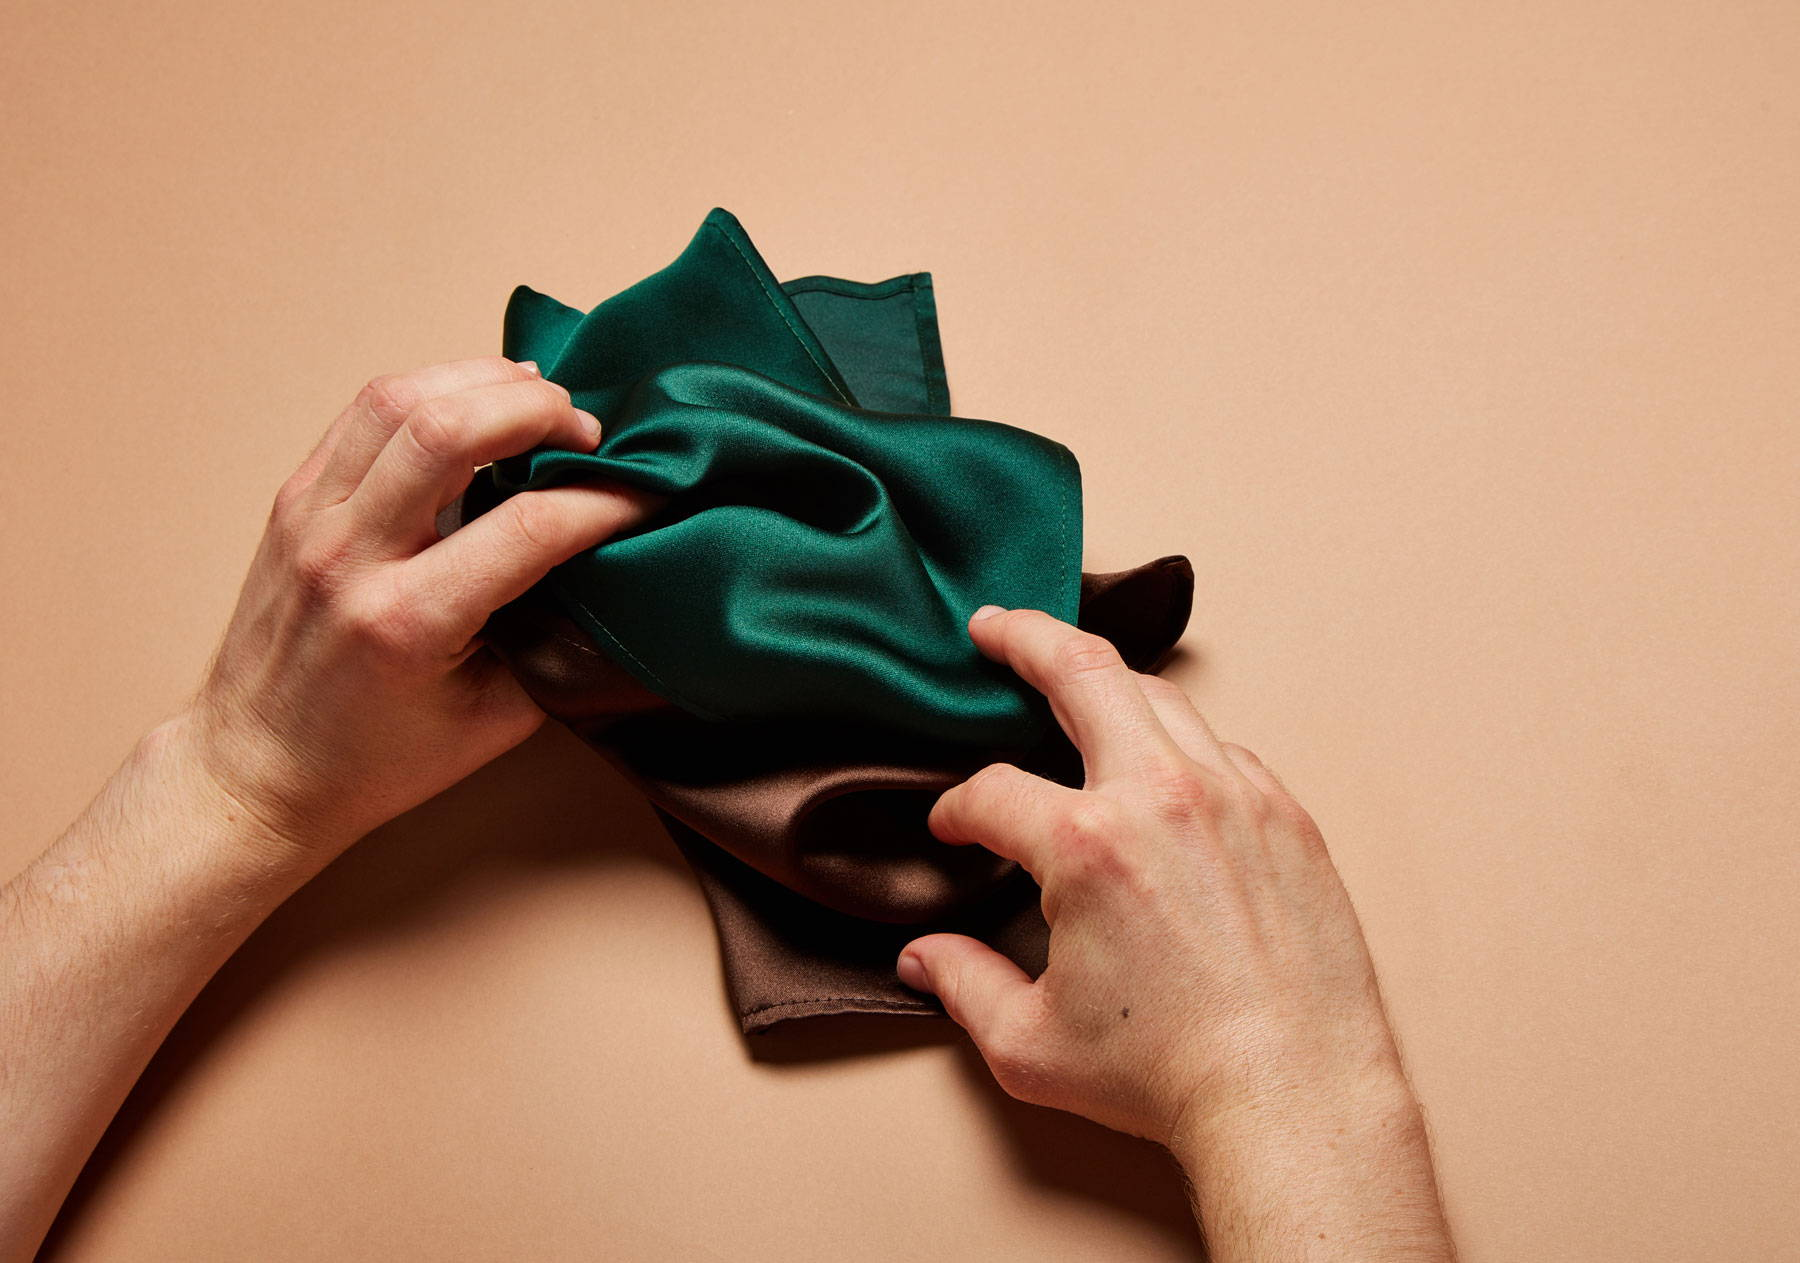 Hands holding green and brown pocket squares